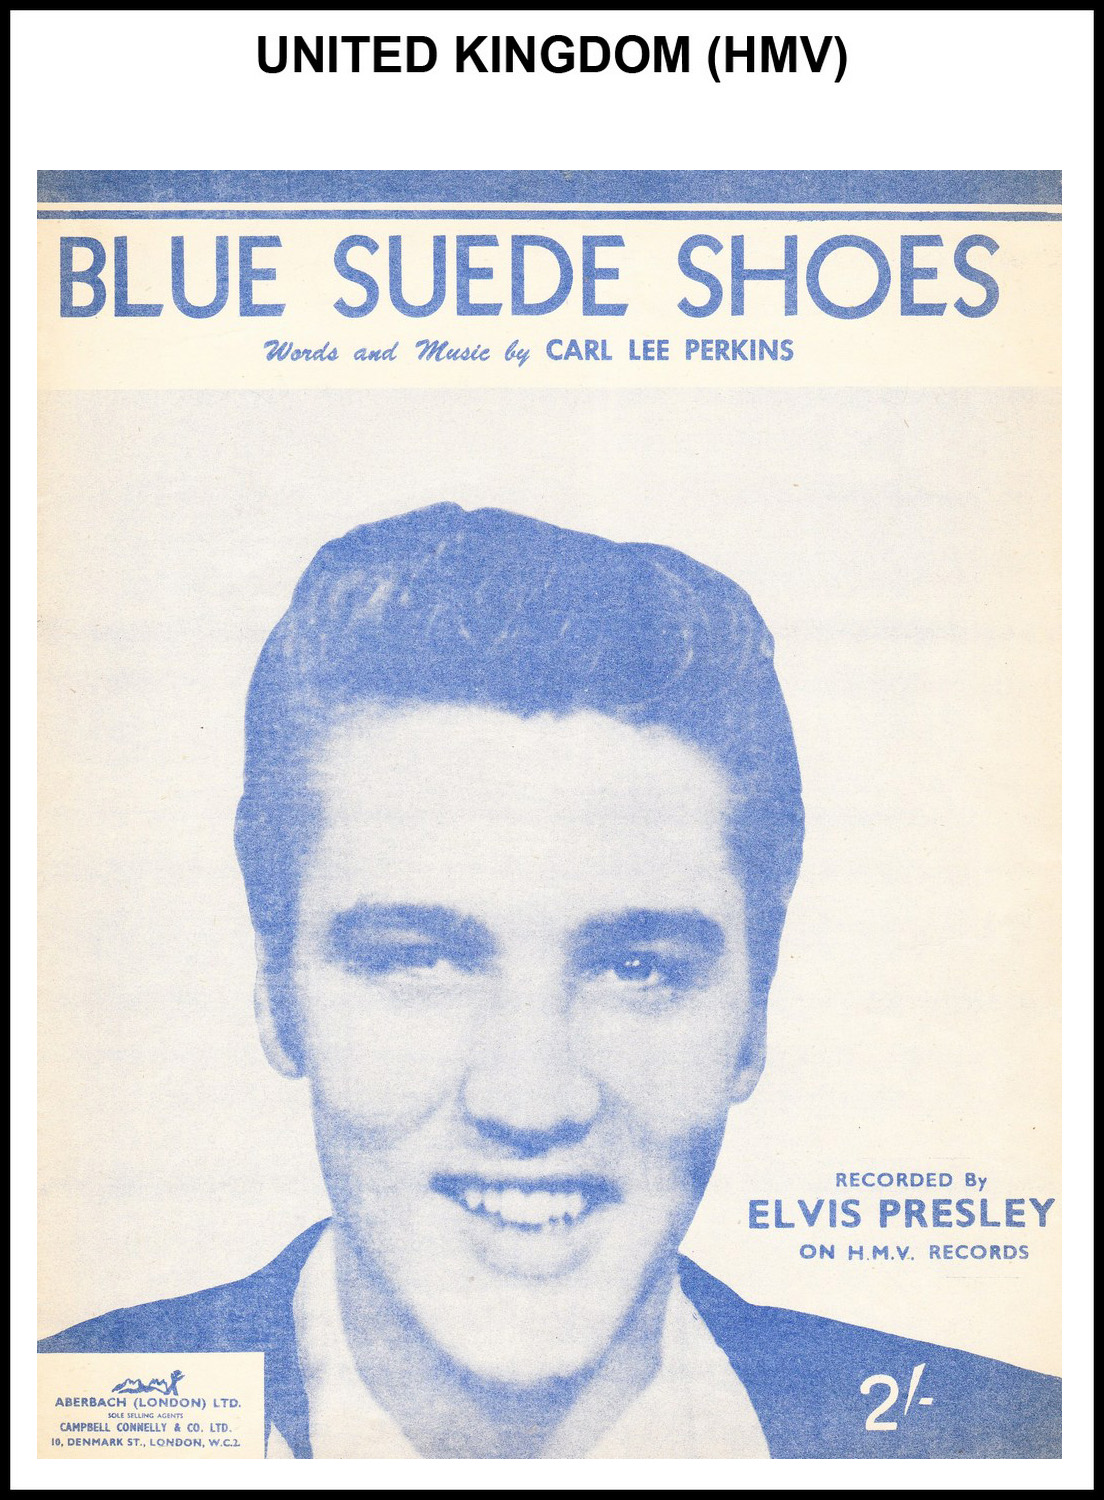 1956 - Blue Suede Shoes (UK, HMV) (CHRIS GILES COLLECTION)